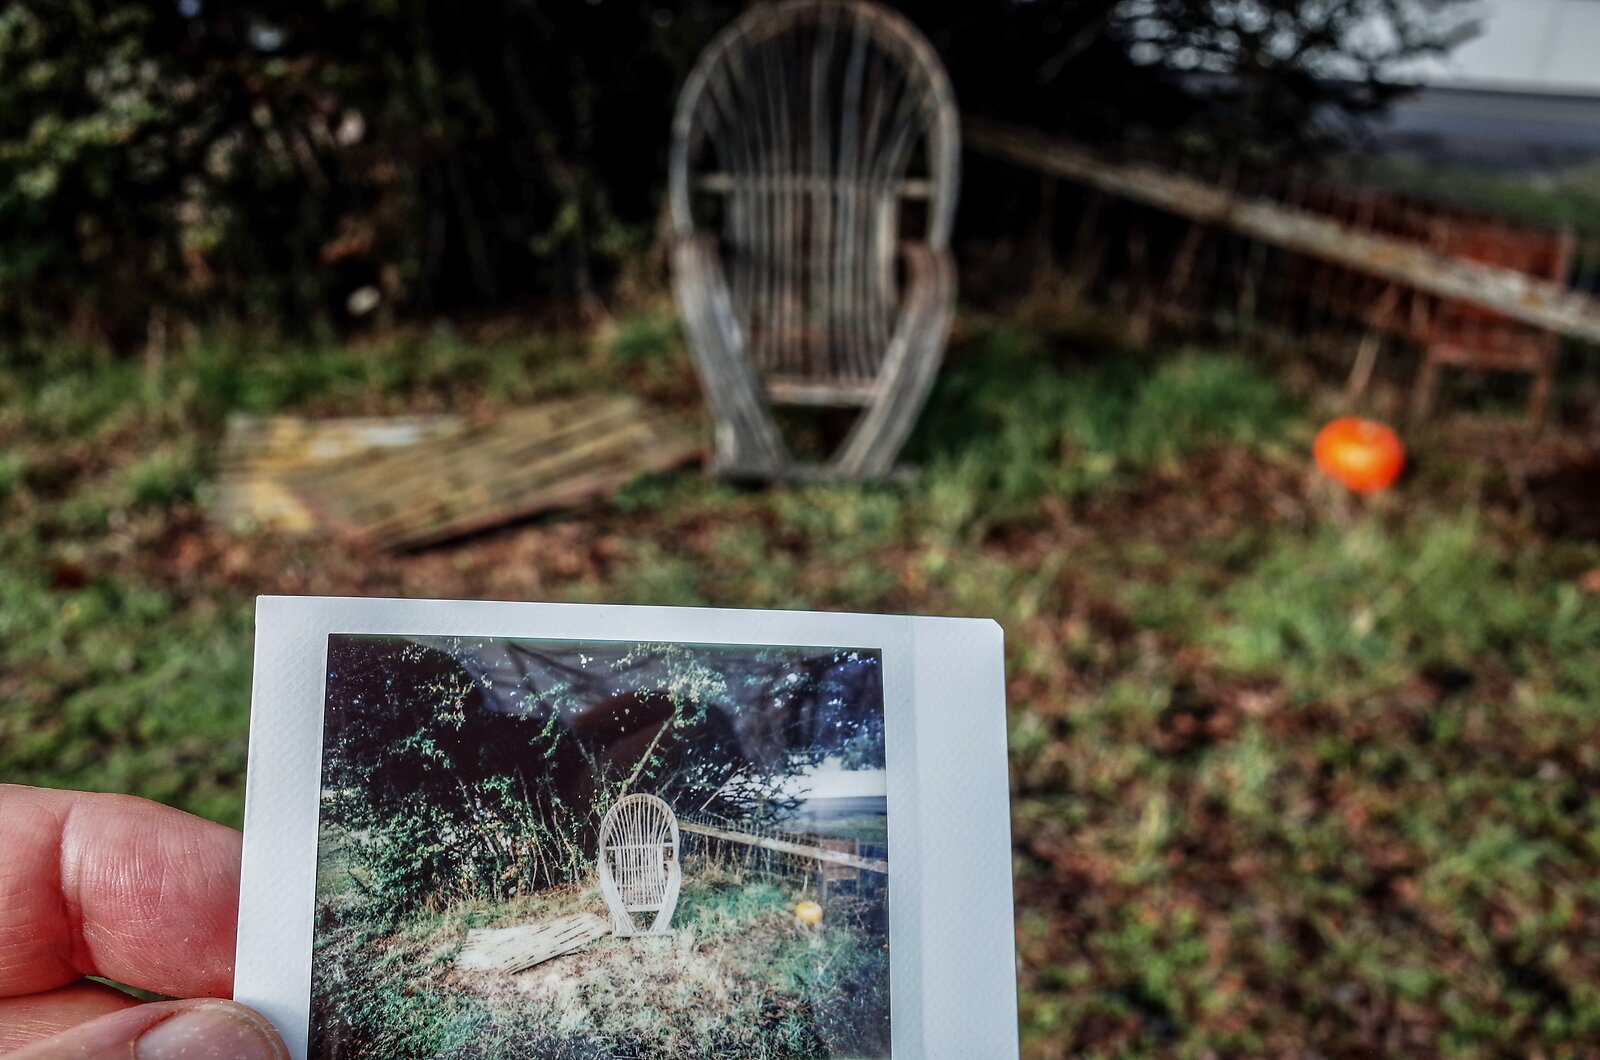 GRII_Jan23_21_Polaroid_of_Chair.jpg